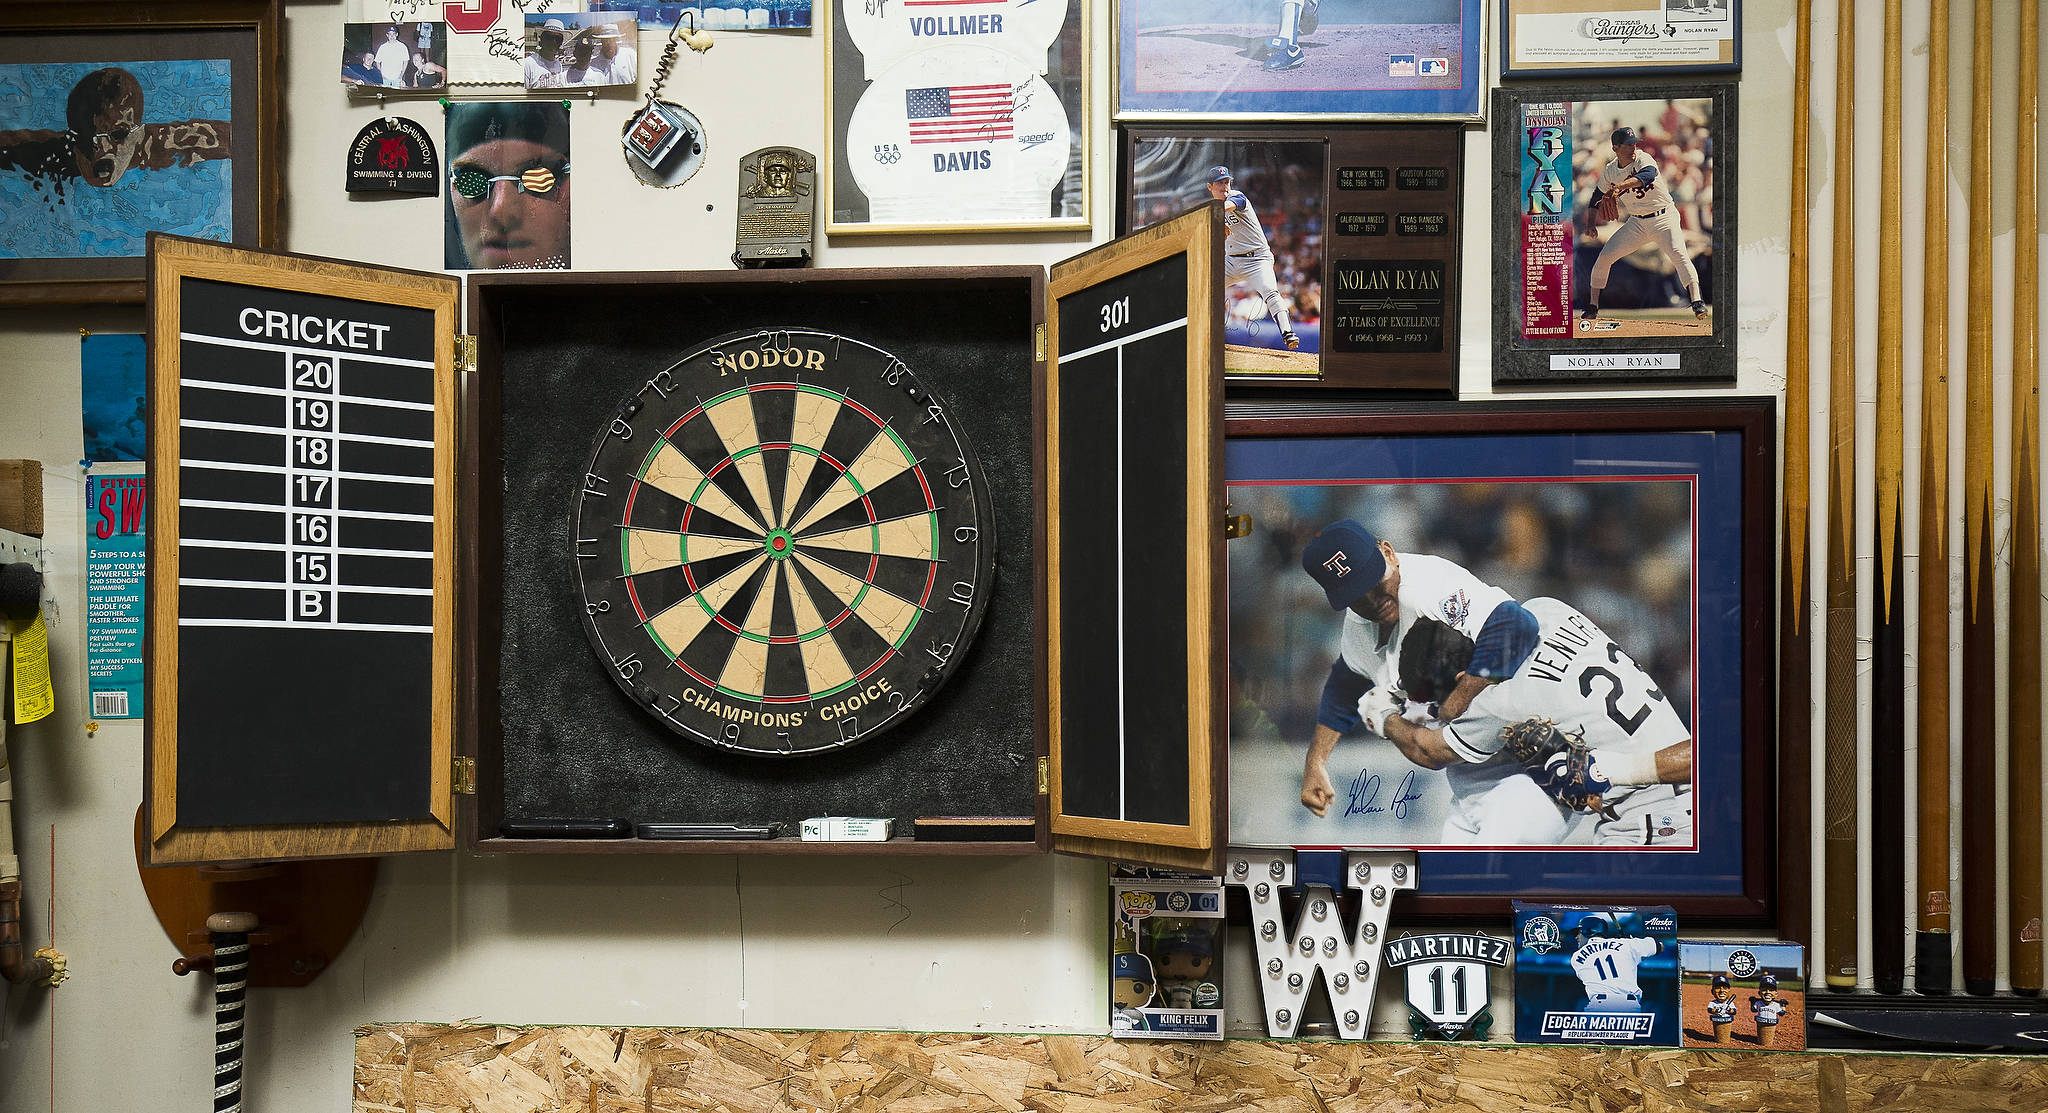 Pictures of Baseball Hall of Fame pitcher Nolan Ryan and swimming memorabilia surround a dartboard made by Josh Whall's father. (Andy Bronson / The Herald)